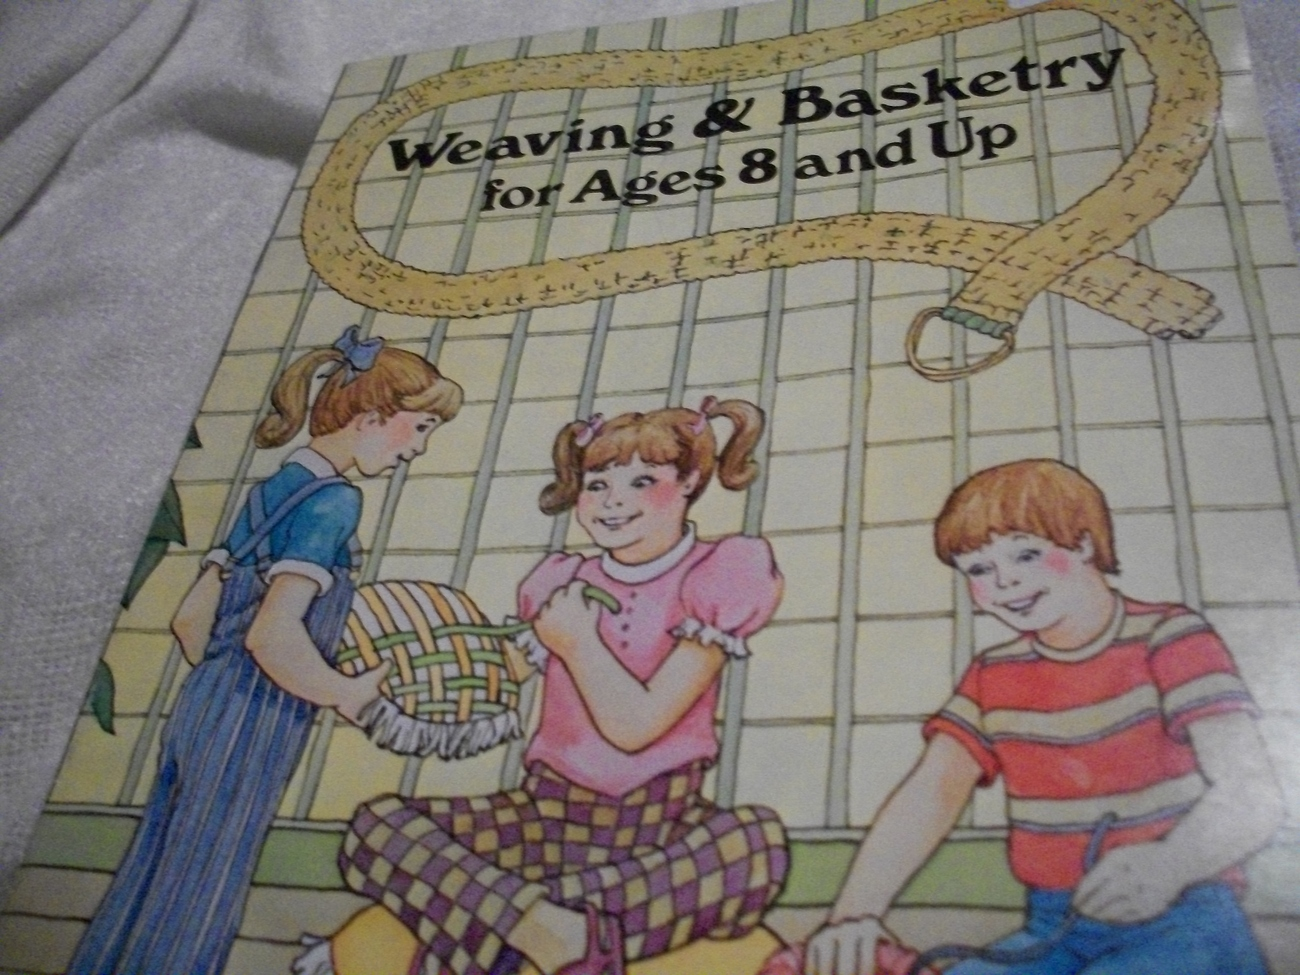 Primary image for Weaving & Basketry Kids Craft Book